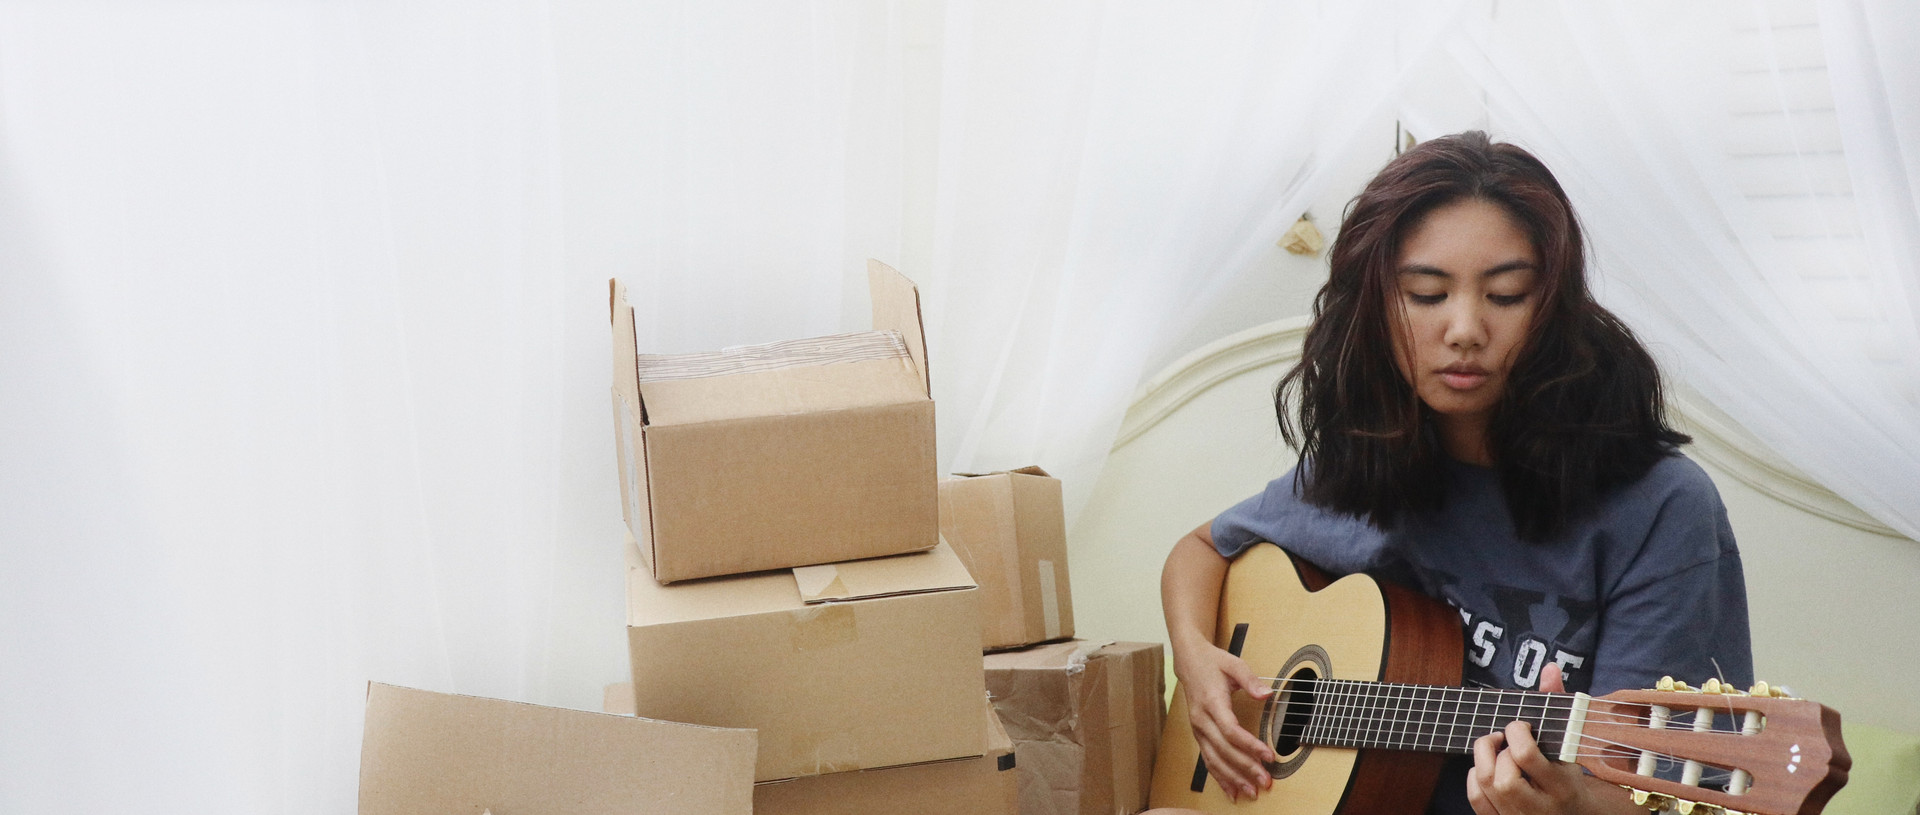 Out of Boxes, Into Songs